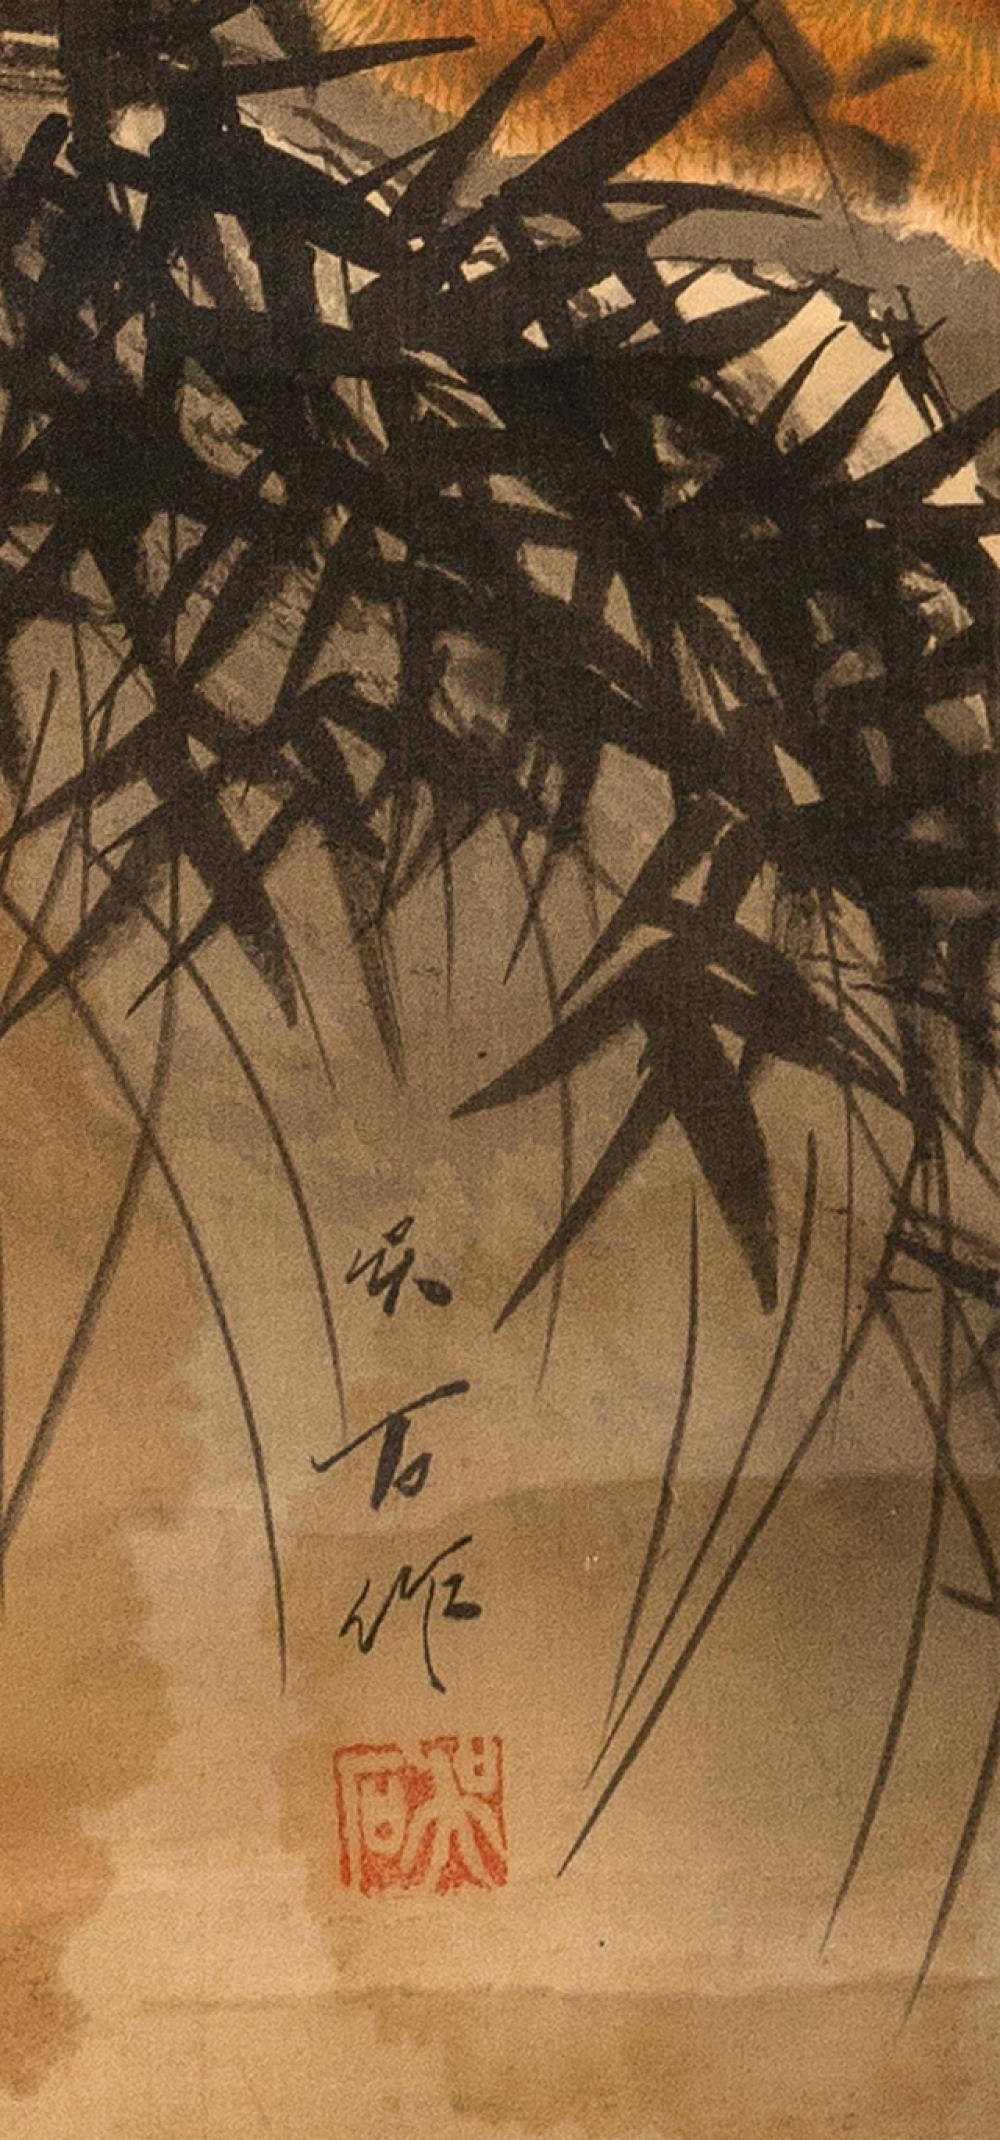 JAPANESE SCROLL PAINTING ON SILK Depicts a tiger and bamboo. Signed and seal marked. 49